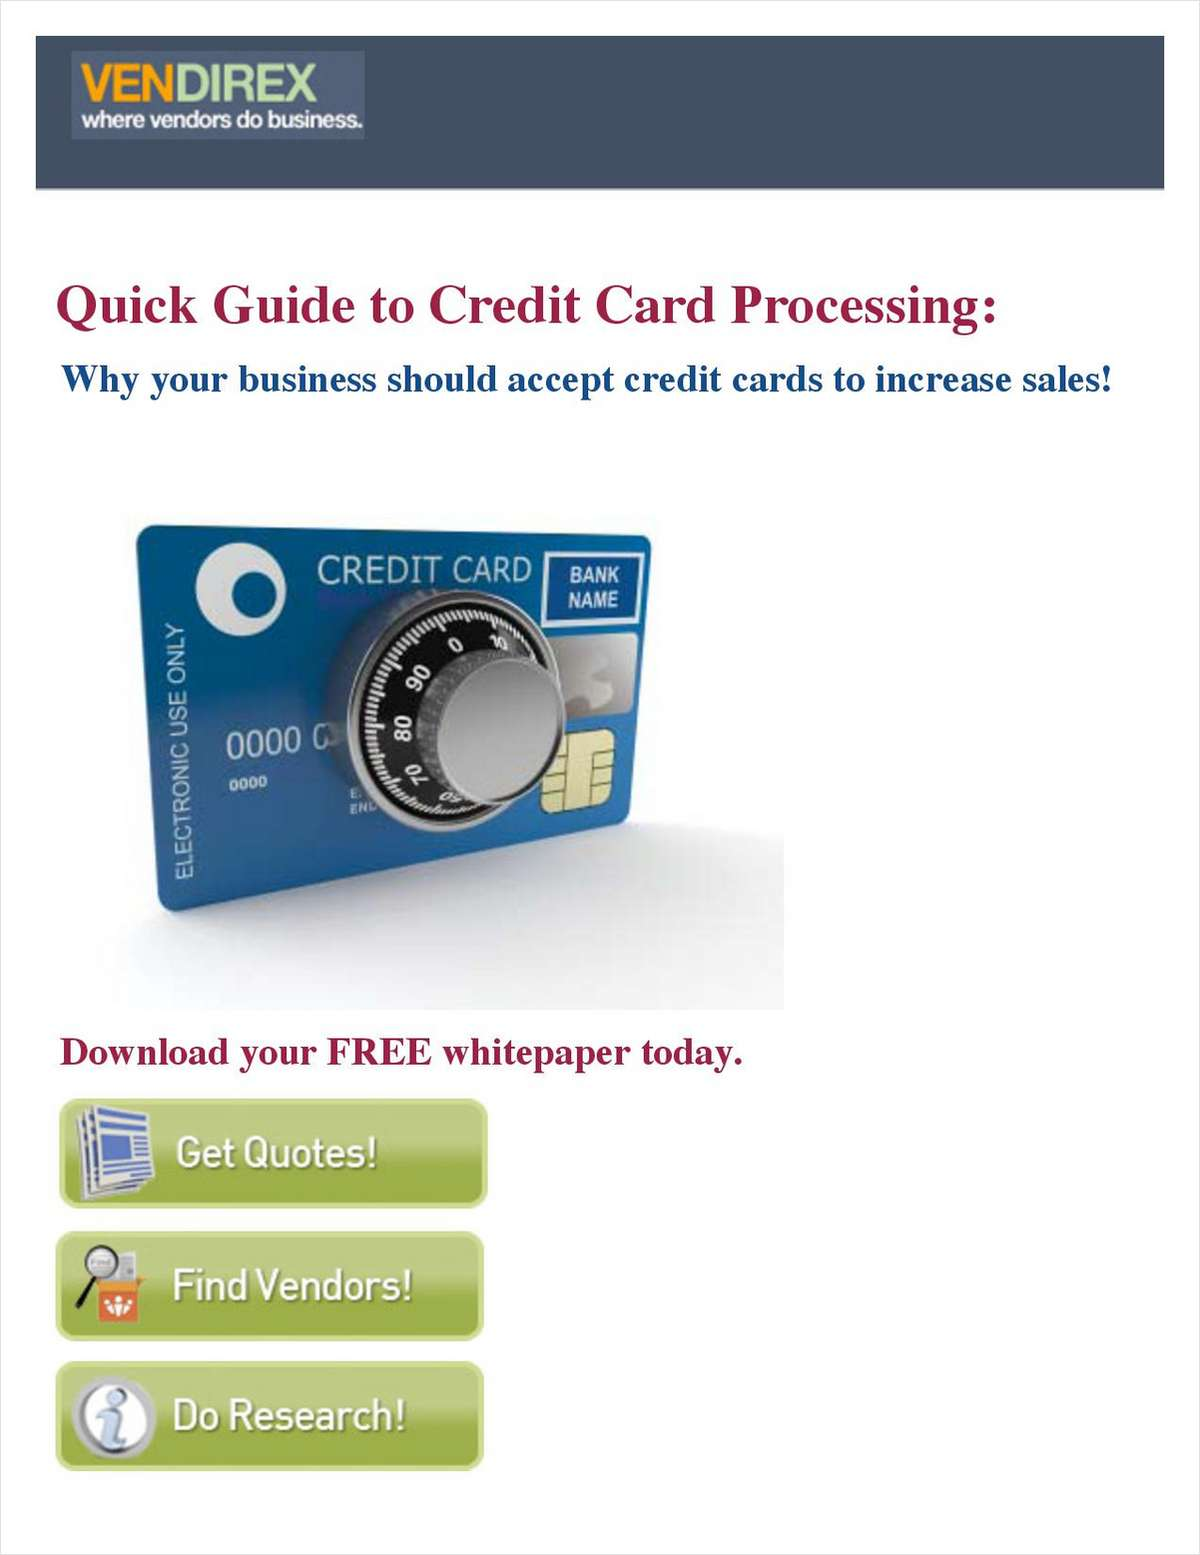 Why Your Business Should Accept Credit Cards to Increase Sales!